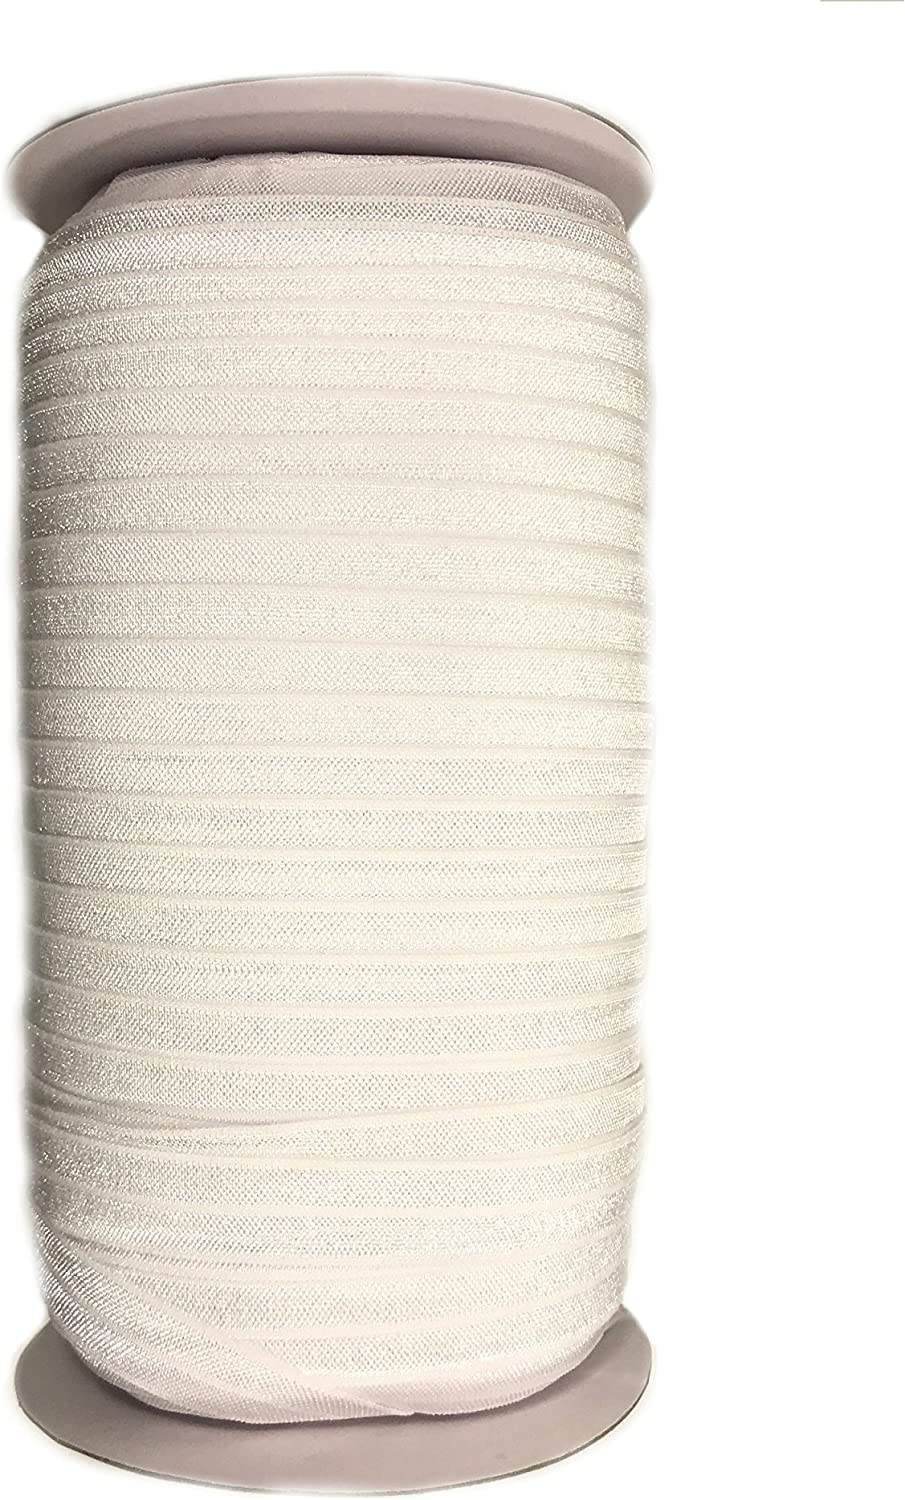 Fold Over Elastic Roll 5 FOE All stores are sold shopping 8